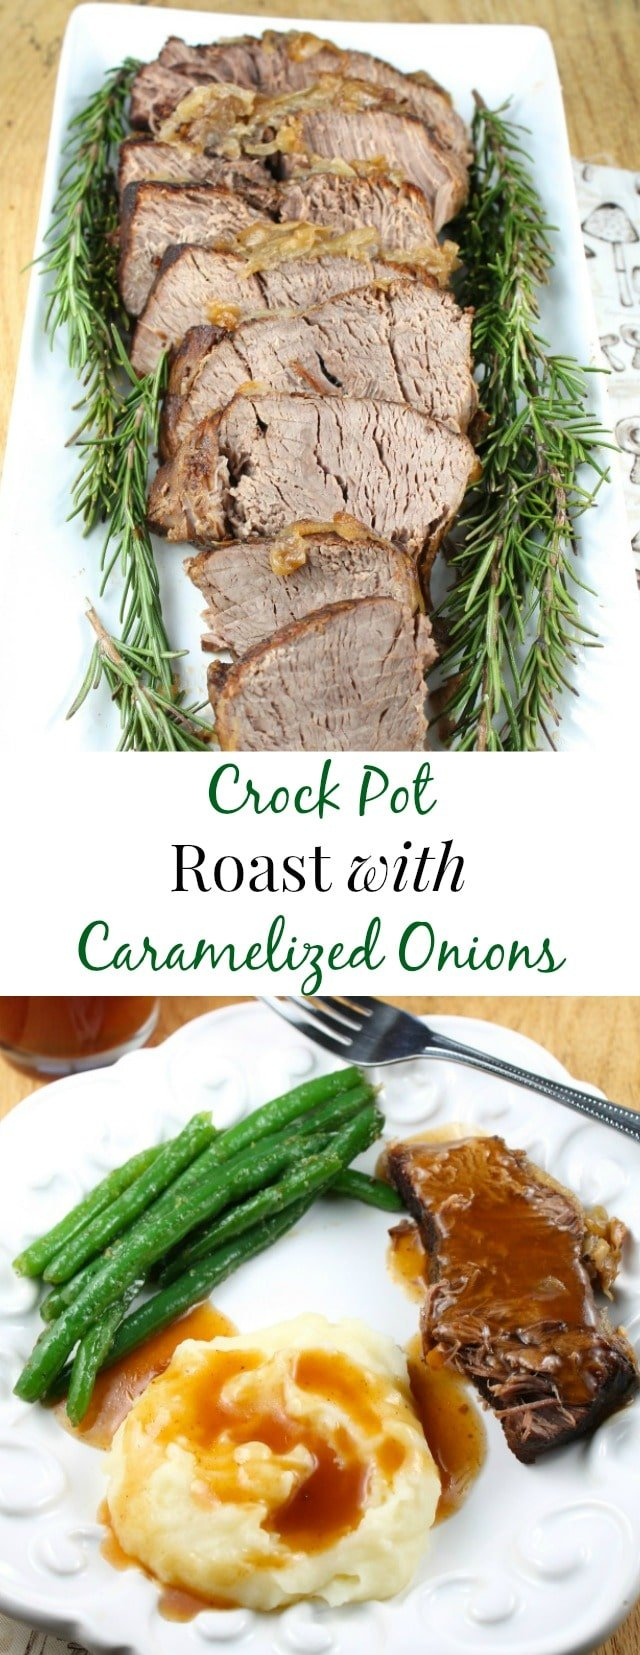 Photo collage sliced pot roast garnished with rosemary on a platter, sliced pot roast with gravy, mashed potatoes and gravy, green beans on a white plate, Text overlay ~ Crock Pot Roast with Caramelized Onions #crockpot #potroast #caramelizedonions